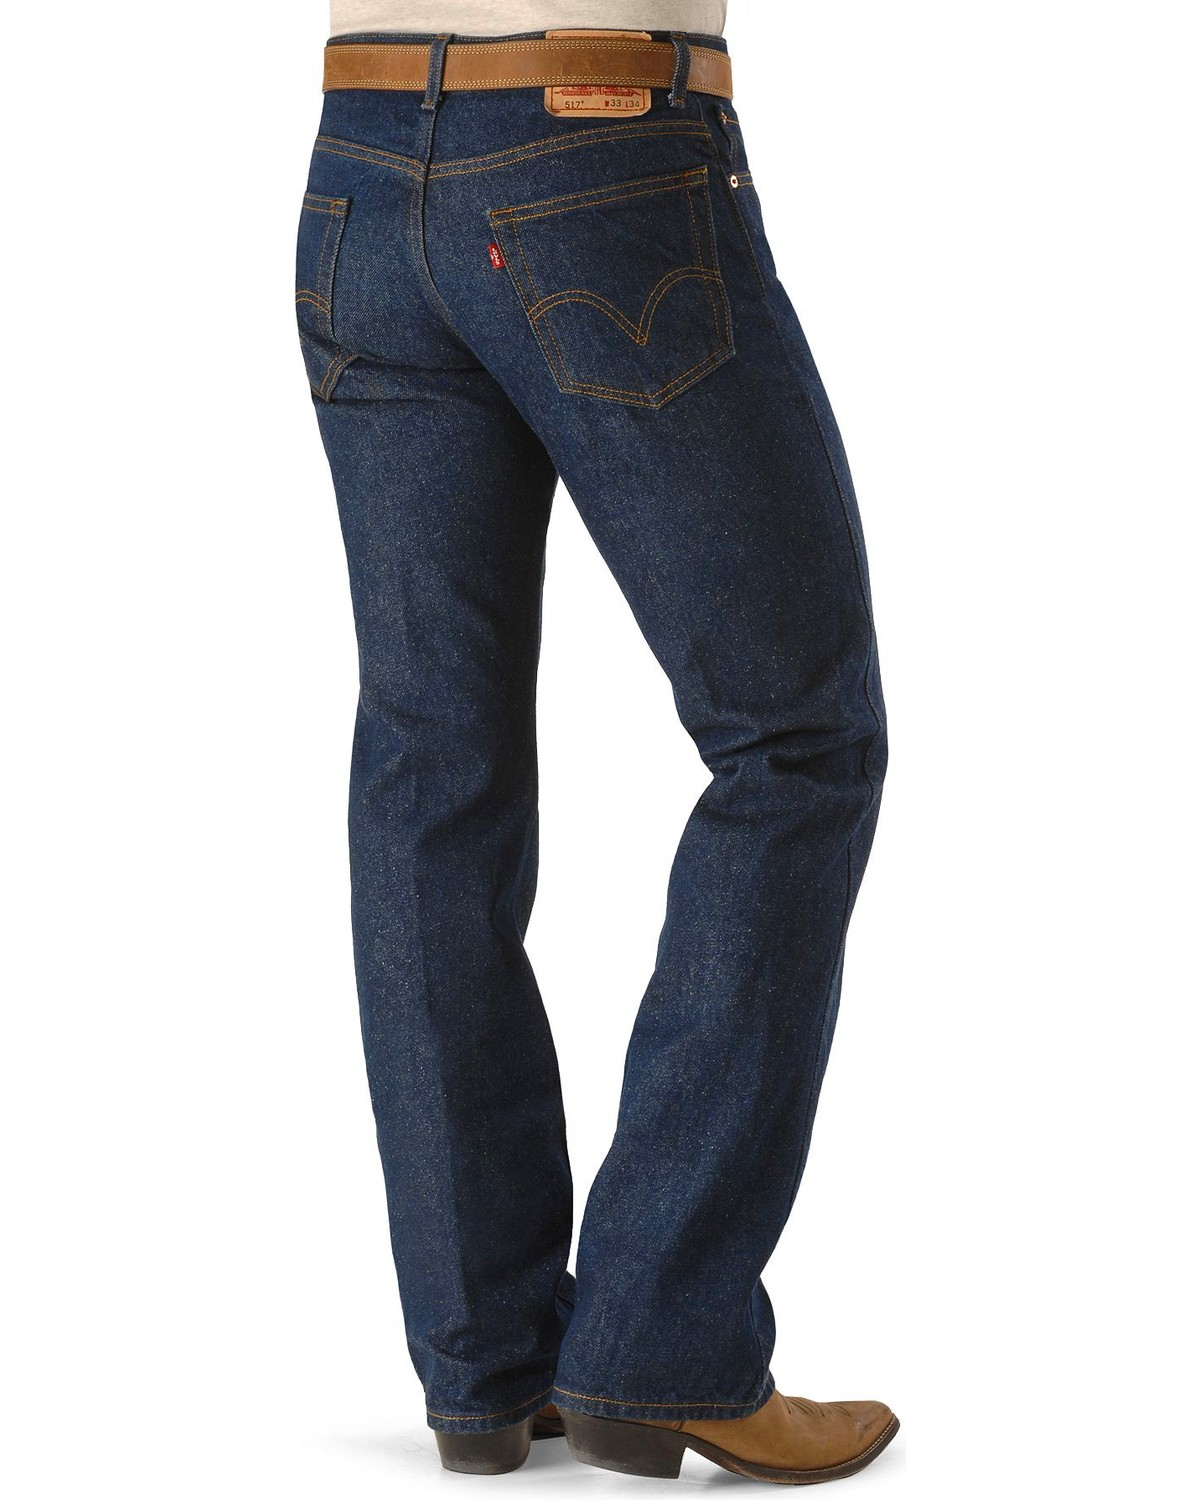 bc96c3d0ecc Zoomed Image Levis Men's 517 Rigid Boot Cut Jeans - Tall, Indigo, ...